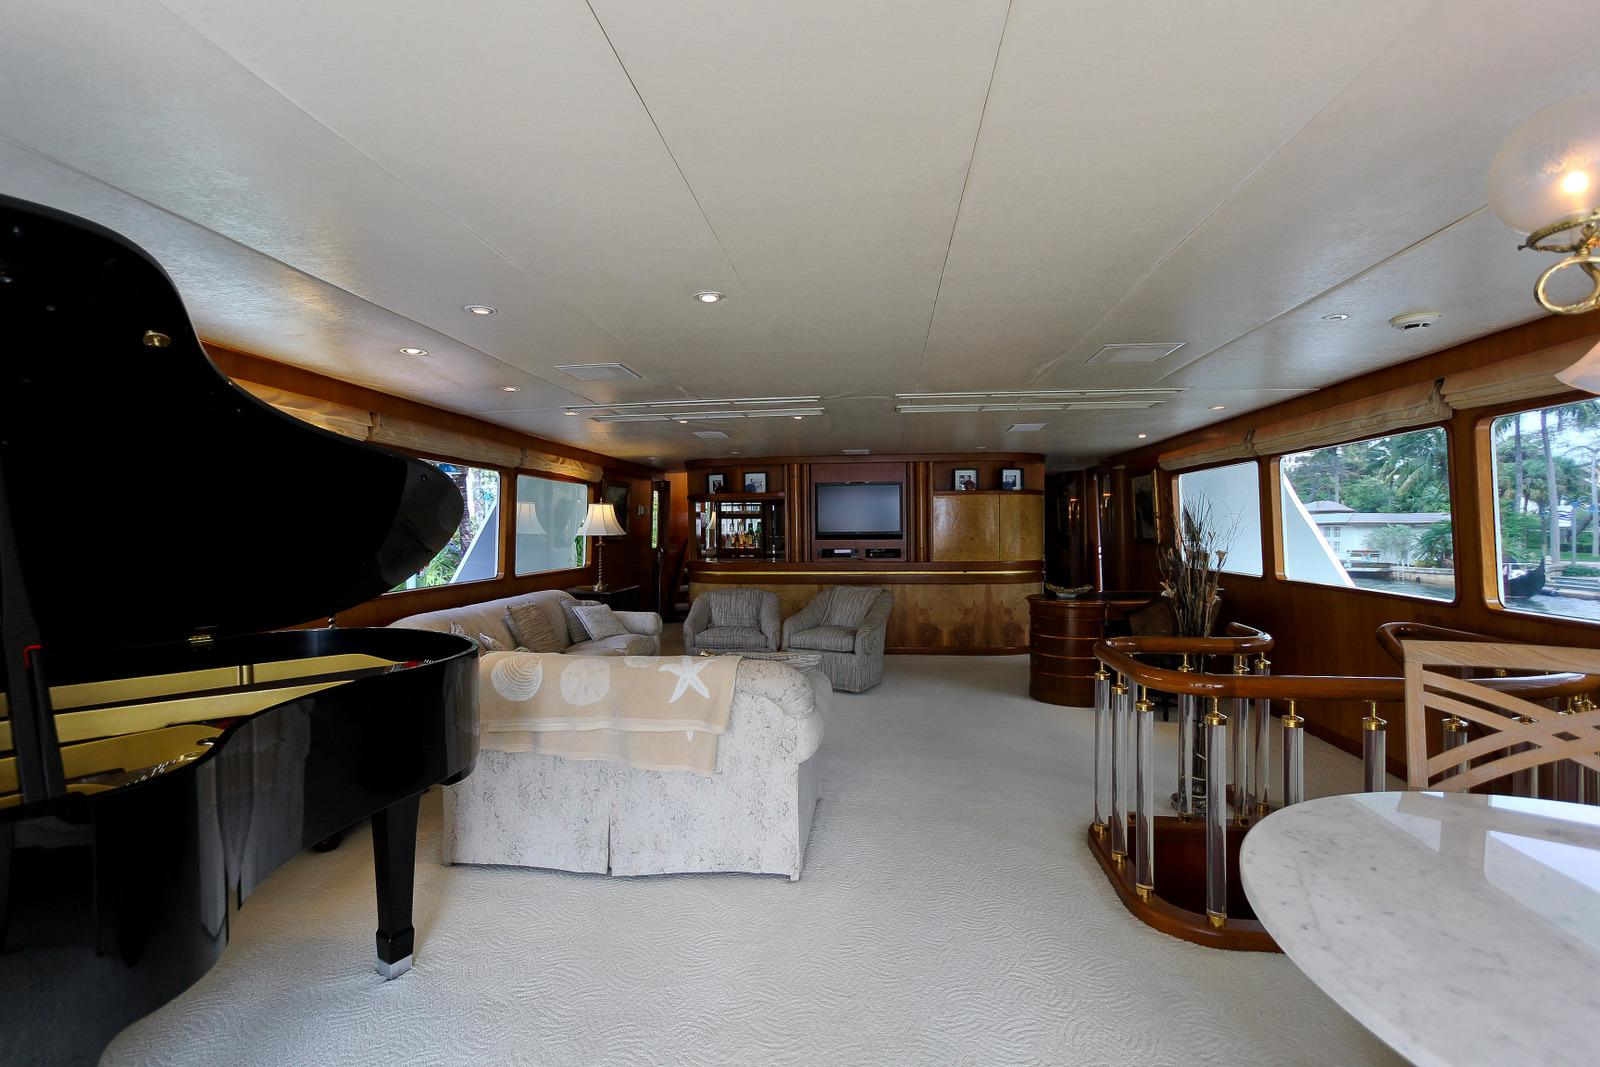 Port Aft - Showing Baby Grand